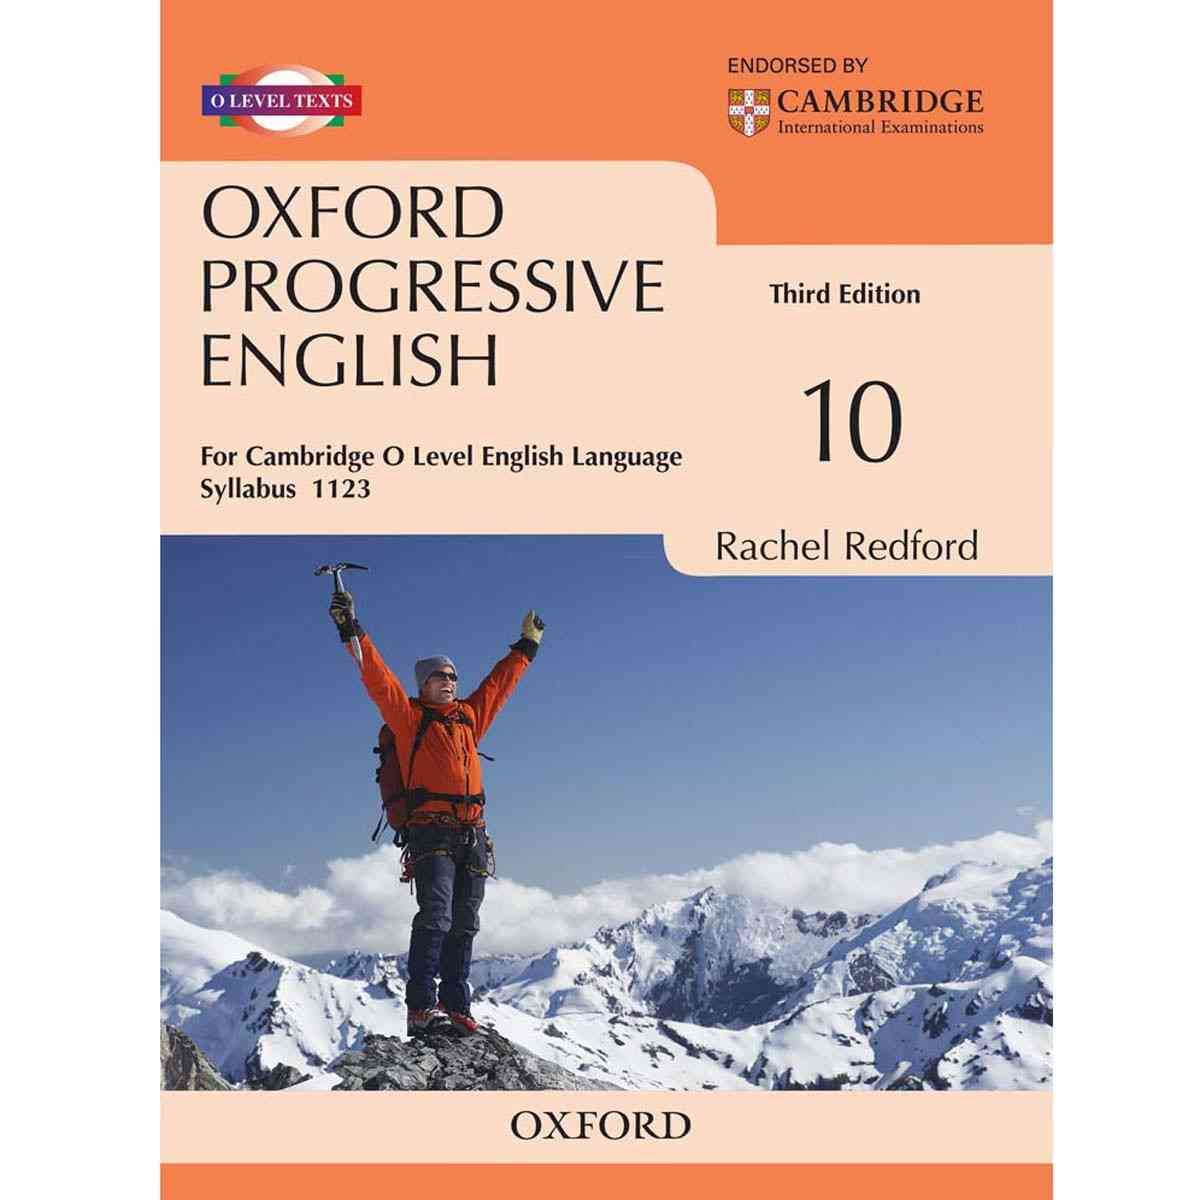 Oxford Progressive English Book 10 By Rachel Redford